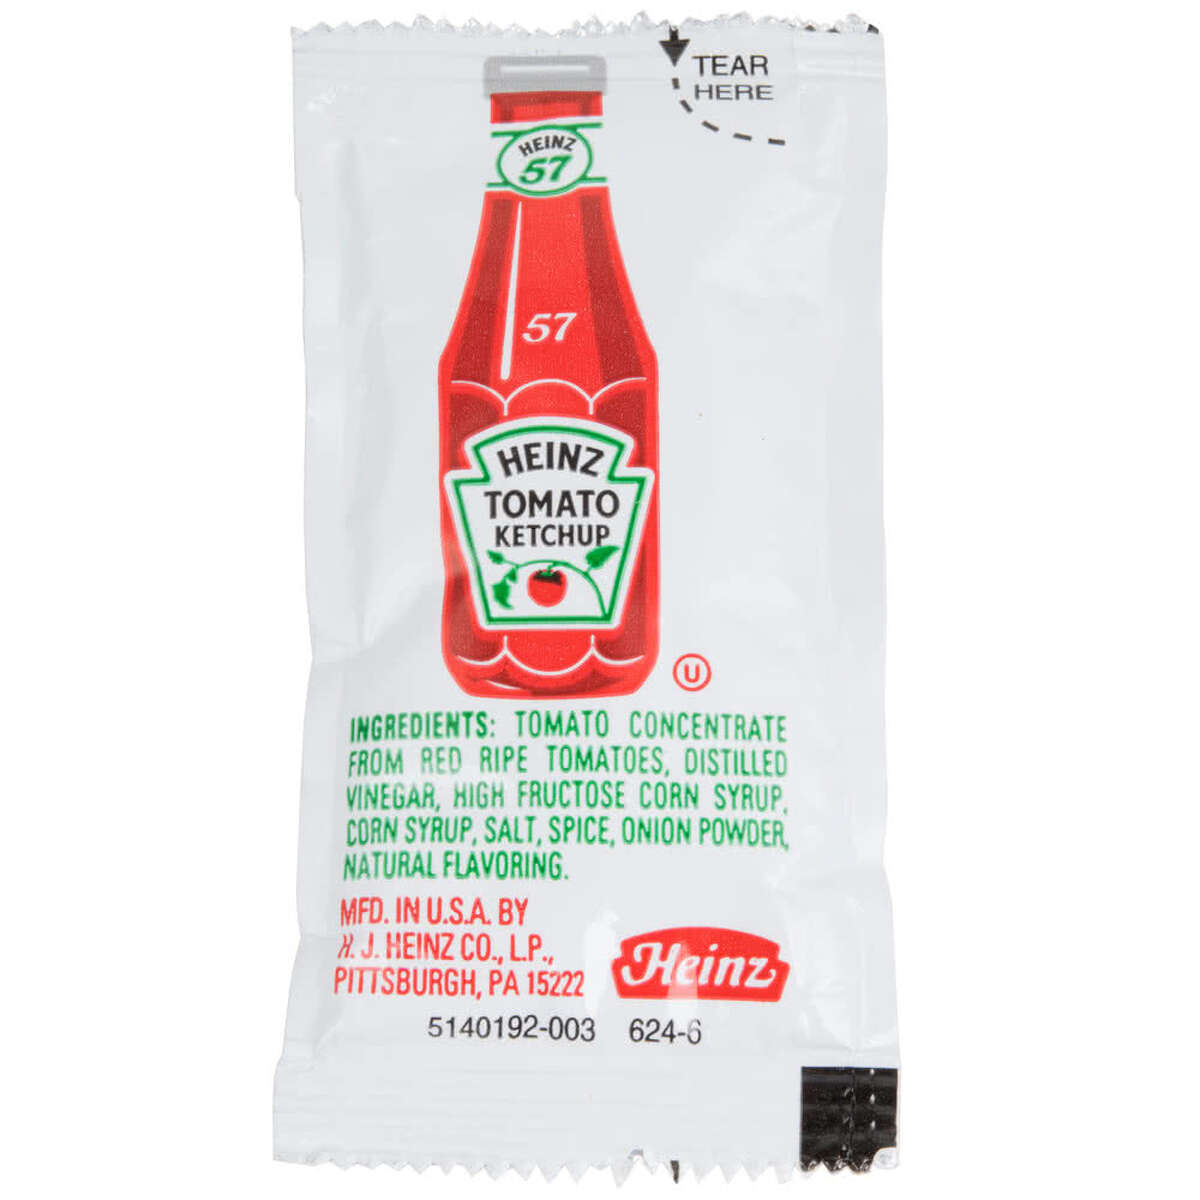 A Heinz ketchup packet, apparently swallowed unwittingly by a 35-year-old woman, led to six years of painful symptoms that mimicked Crohn's disease.